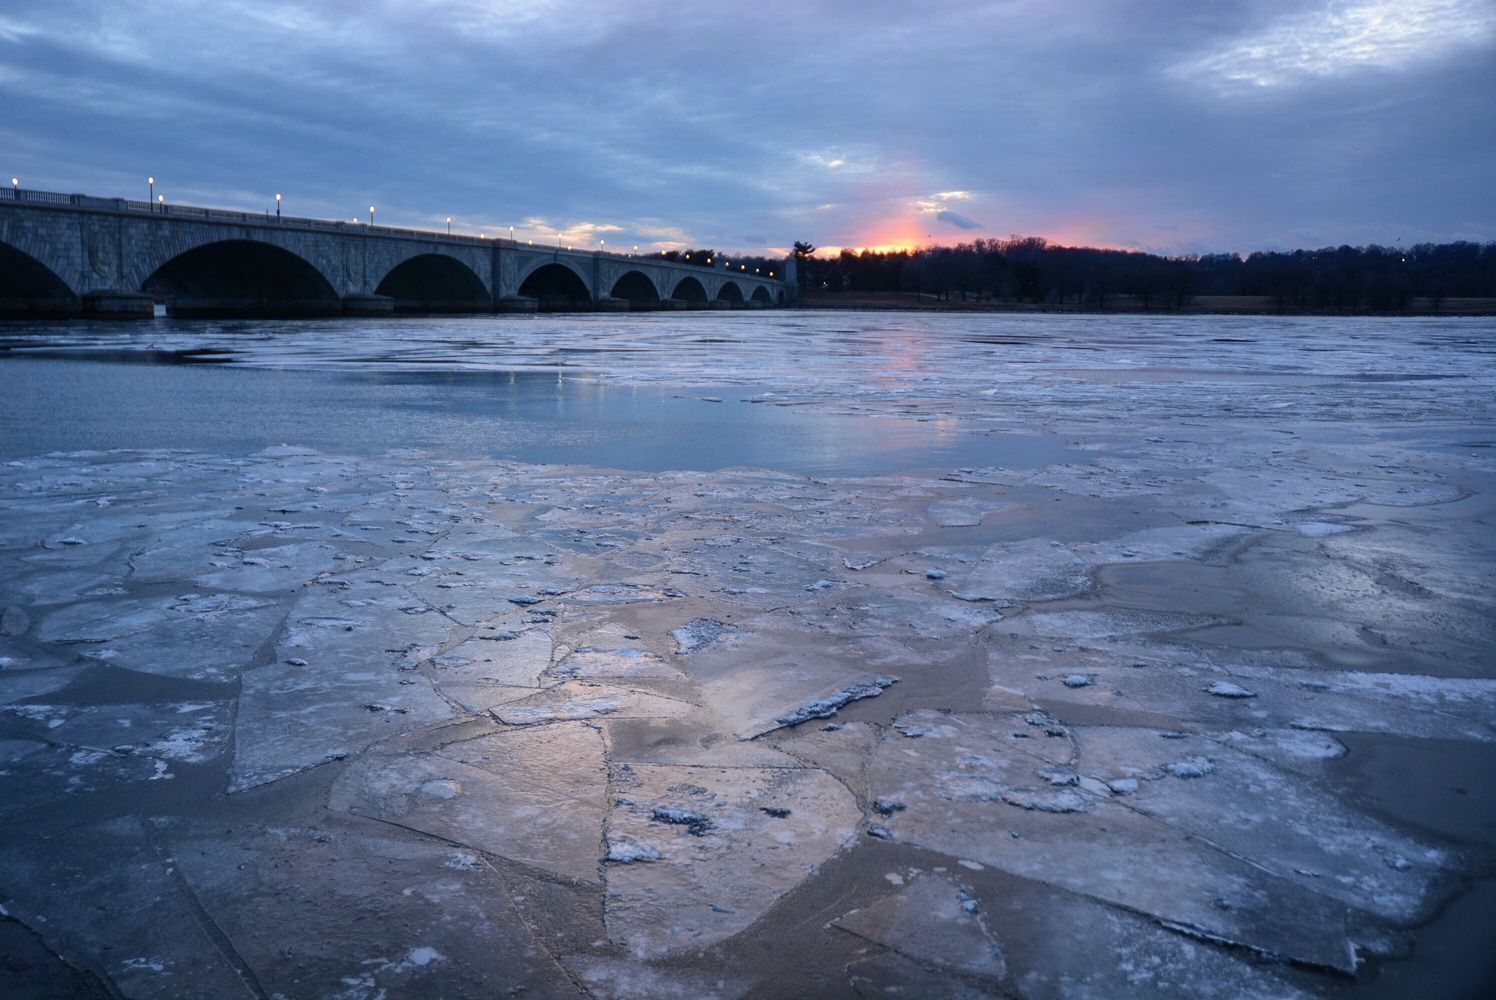 Sections of the tidal Potomac River begin to freeze from shore to shore in this photo taken late on December 31, 2017 as bitterly cold air settles over the Washington region. (WTOP/Dave Dildine)